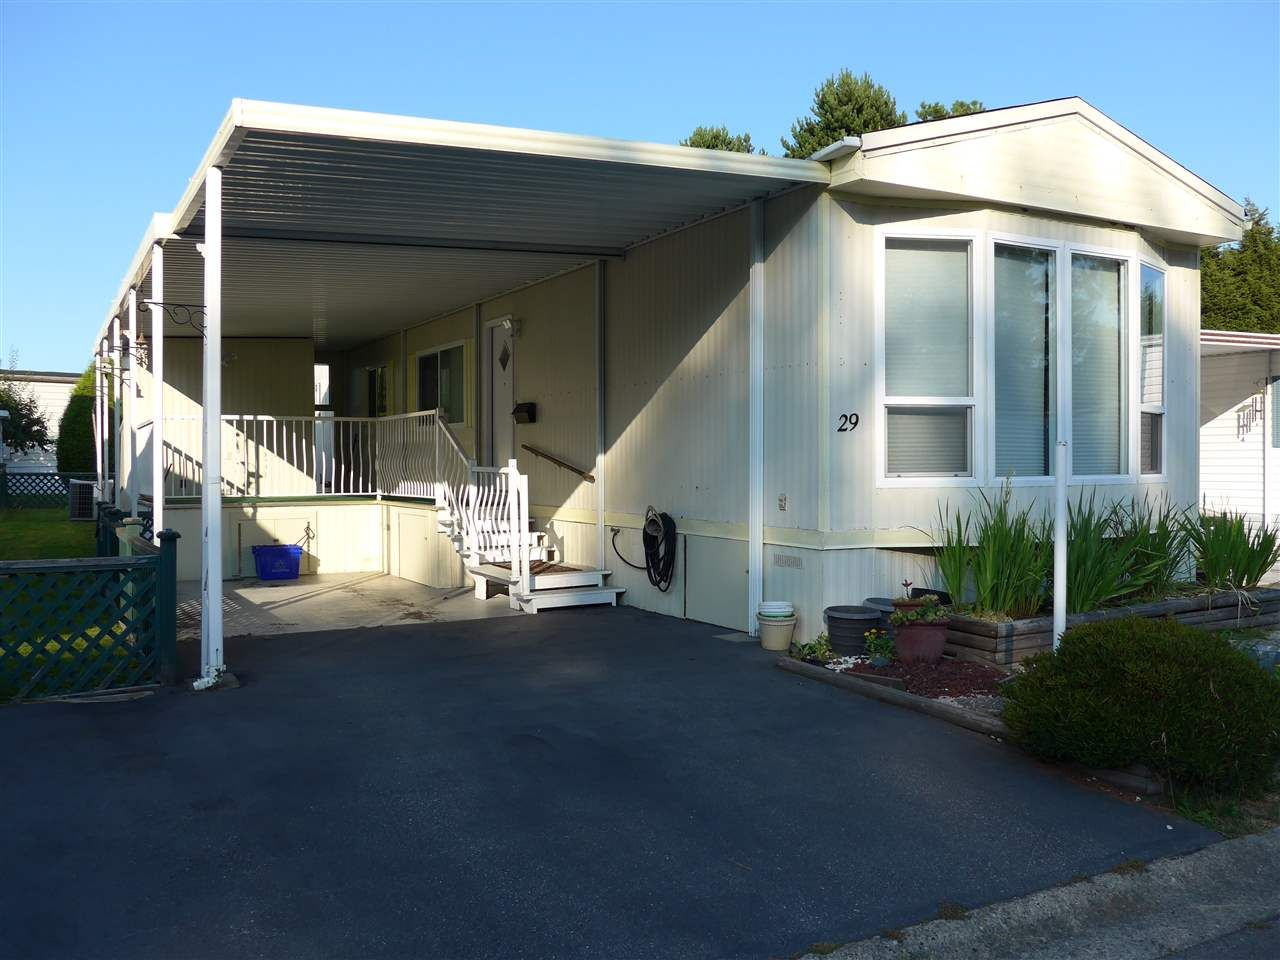 """Main Photo: 29 2120 KING GEORGE Boulevard in Surrey: King George Corridor Manufactured Home for sale in """"Five Oaks Park"""" (South Surrey White Rock)  : MLS®# R2485760"""